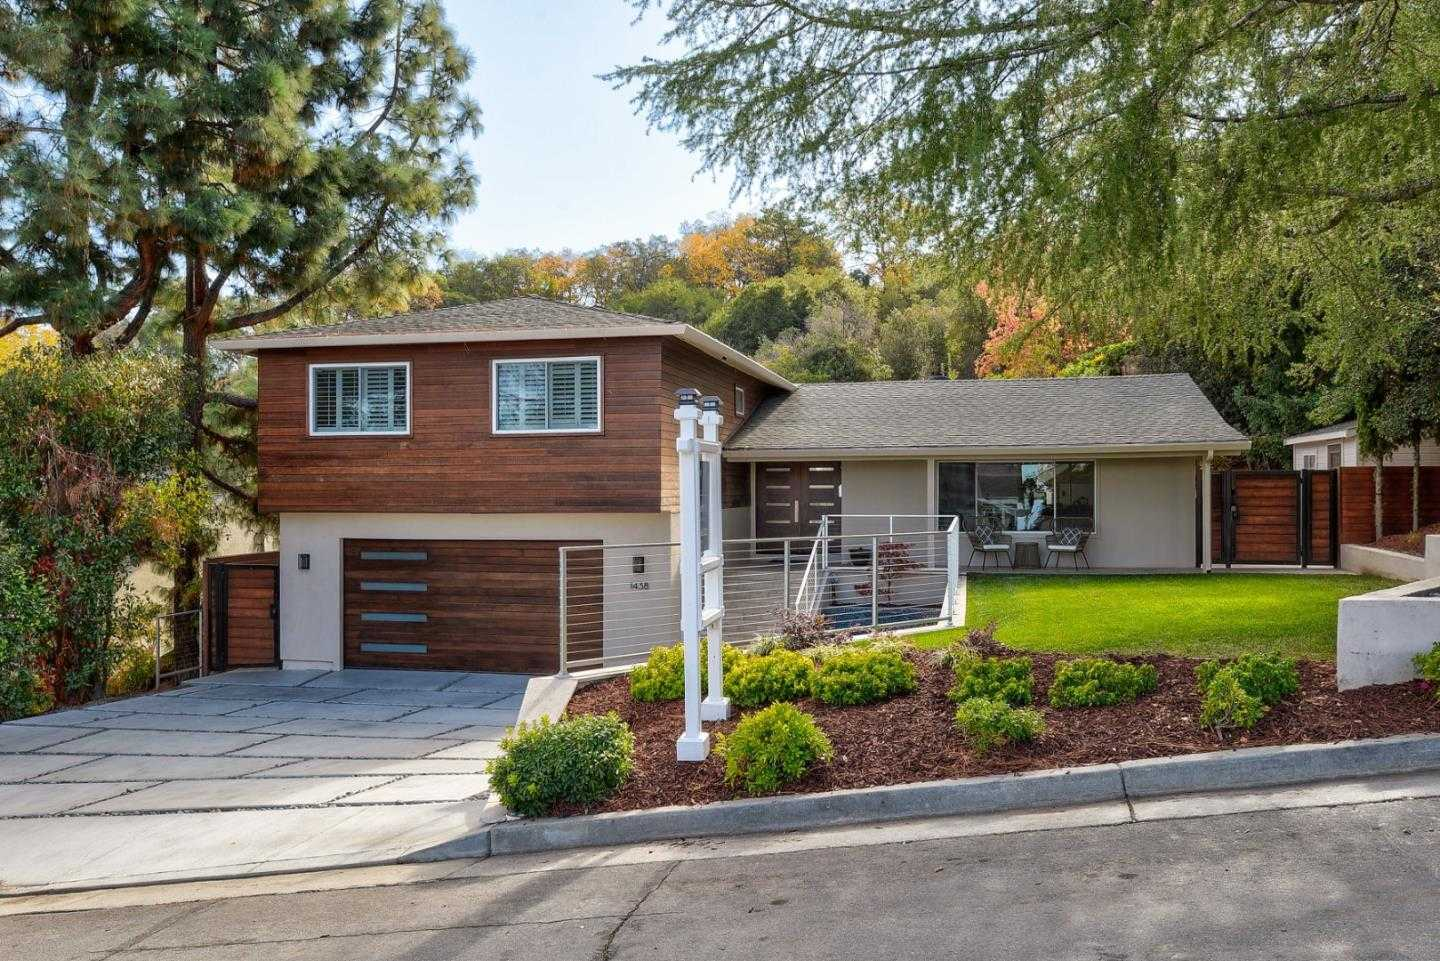 $1,995,000 - 4Br/3Ba -  for Sale in San Jose